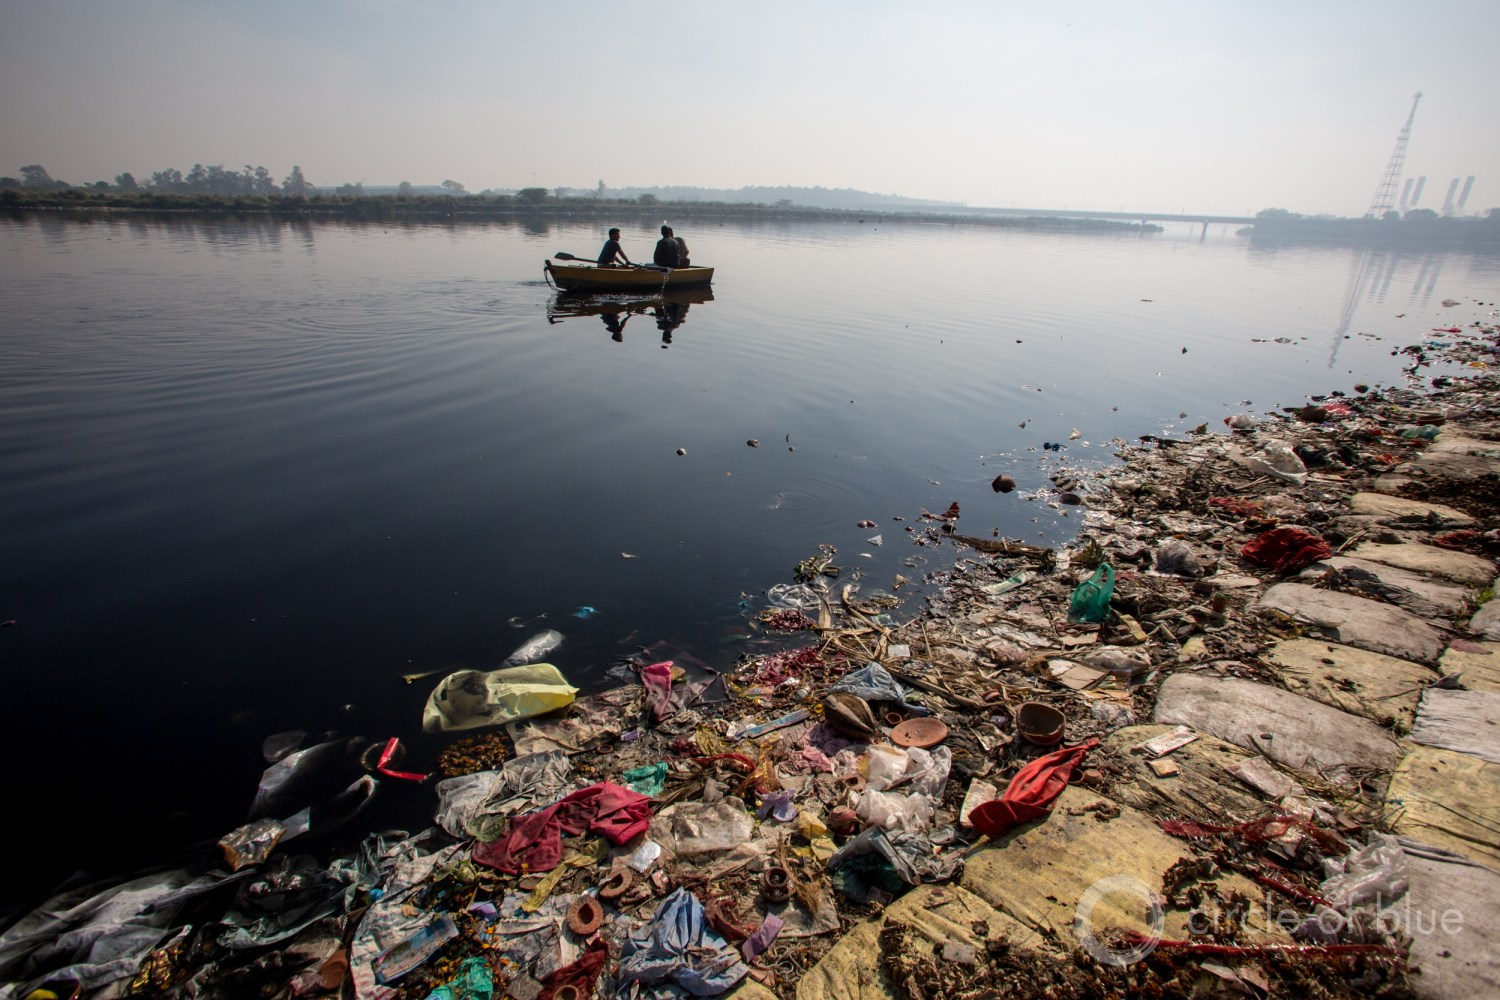 The Yamuna River flows through Delhi, the capital of India. The world's second most populous country faces severe water and climate challenges. Photo © J. Carl Ganter / Circle of Blue